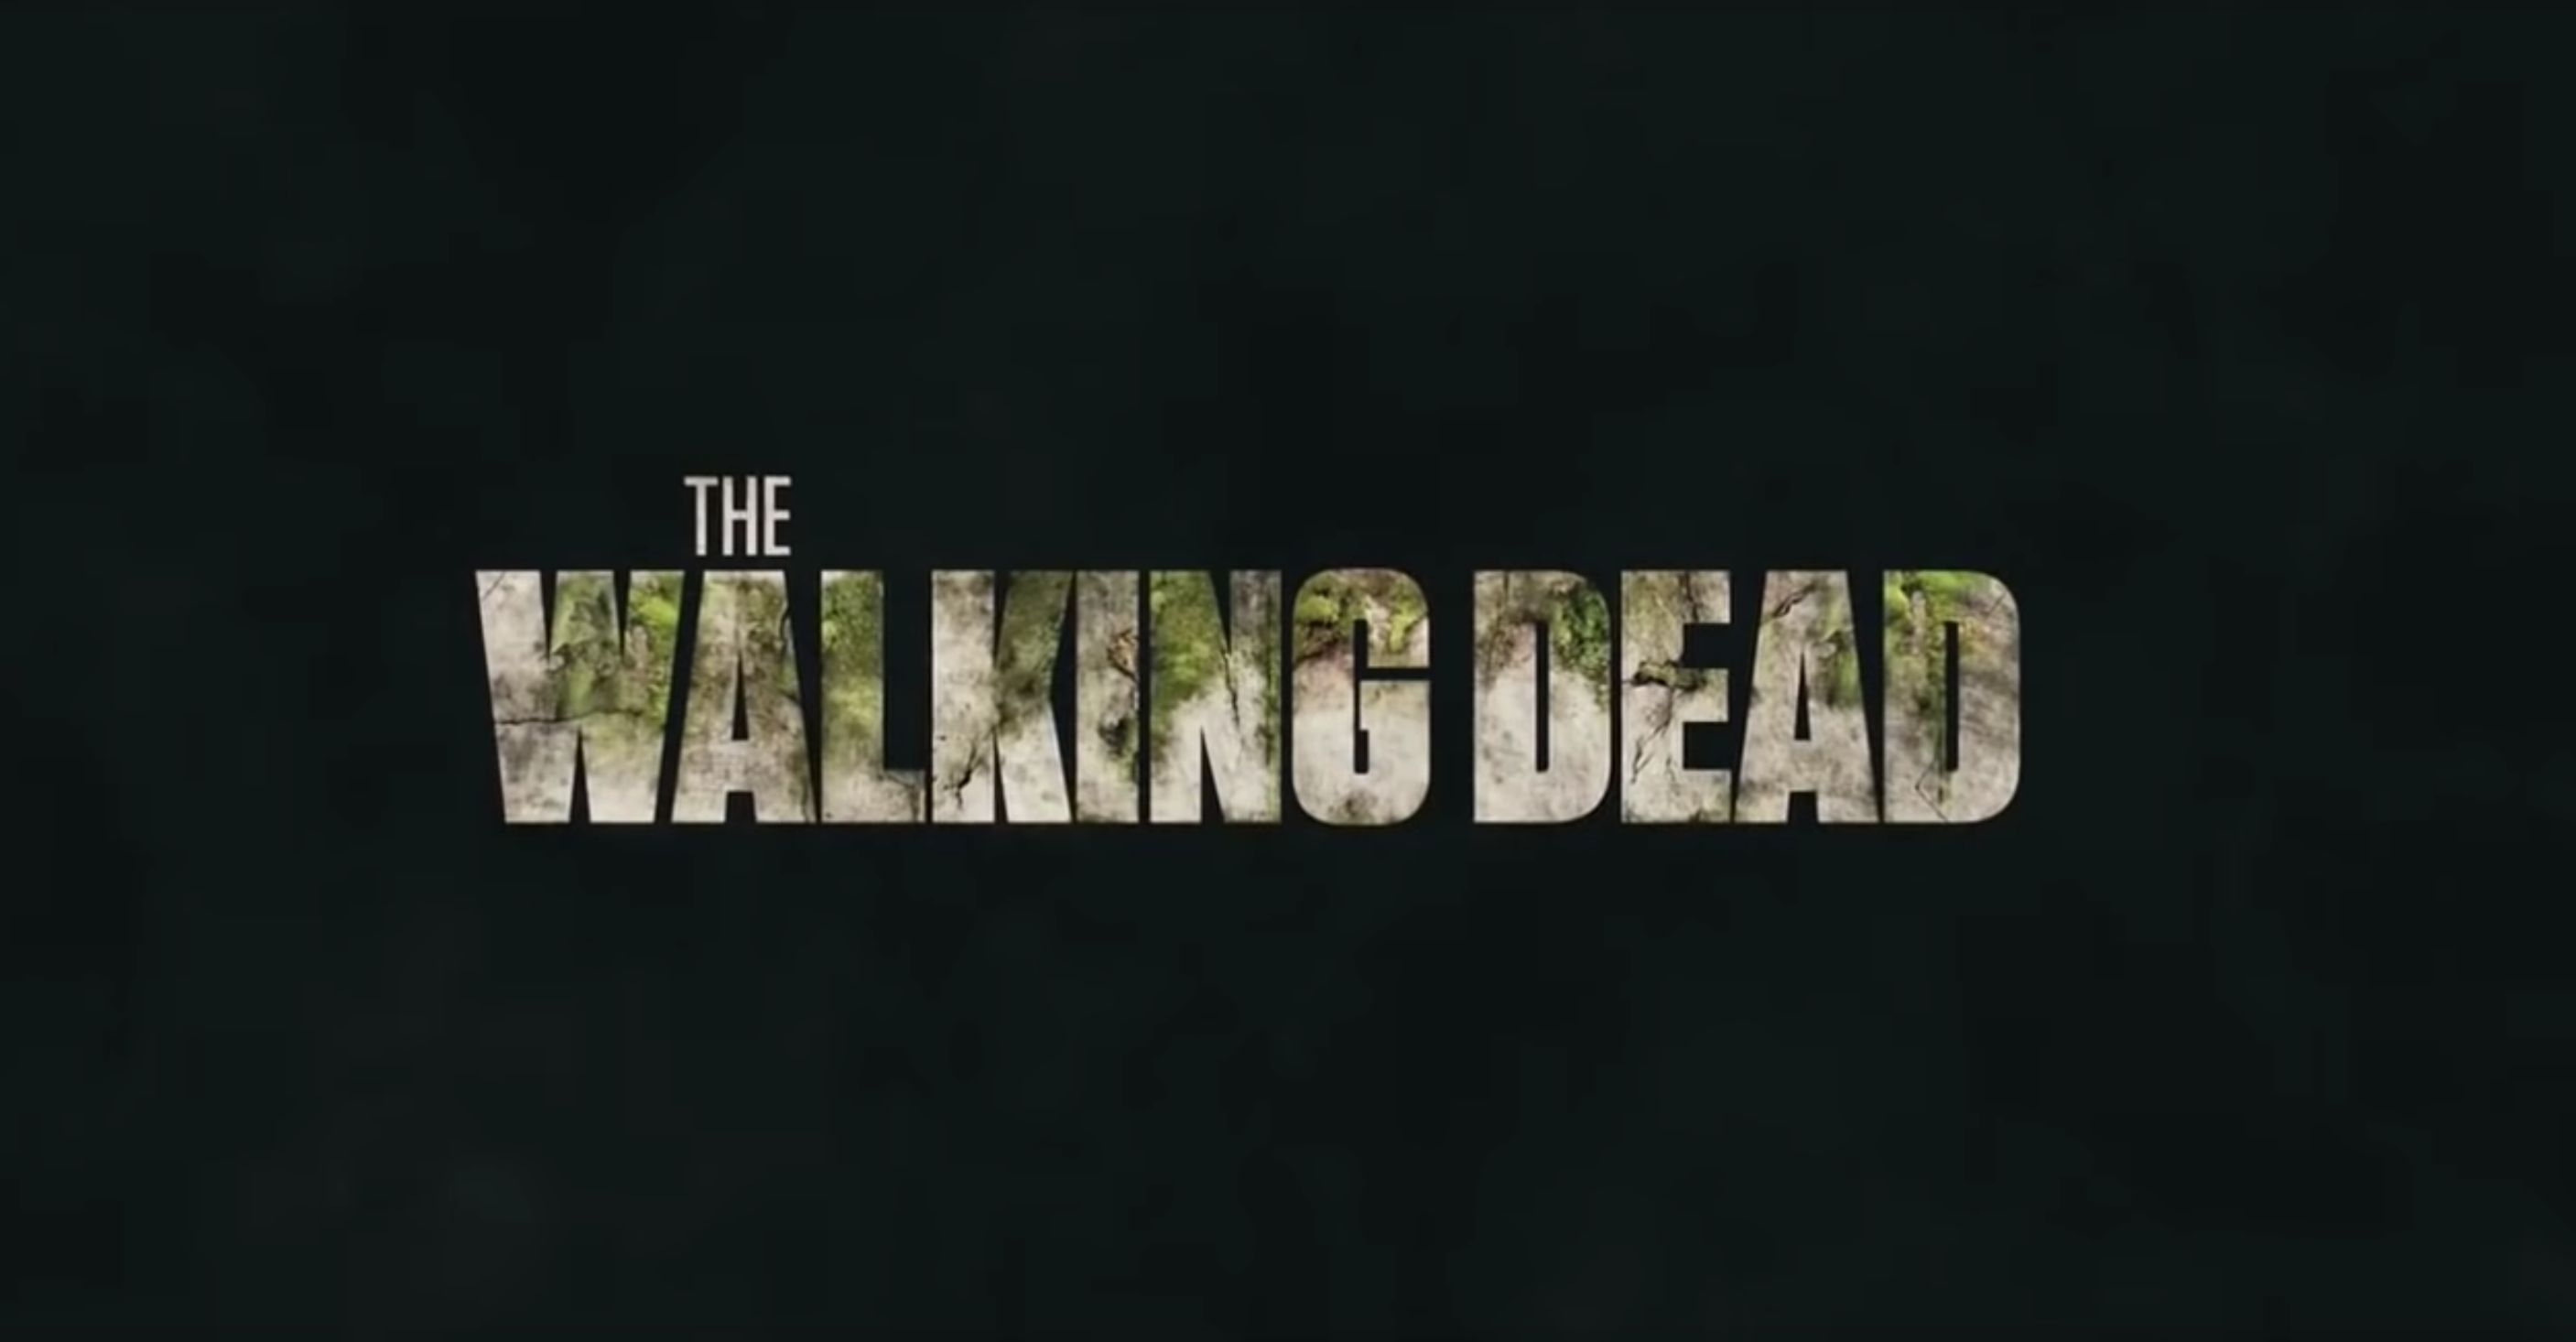 """Walking Dead"" title sequence."